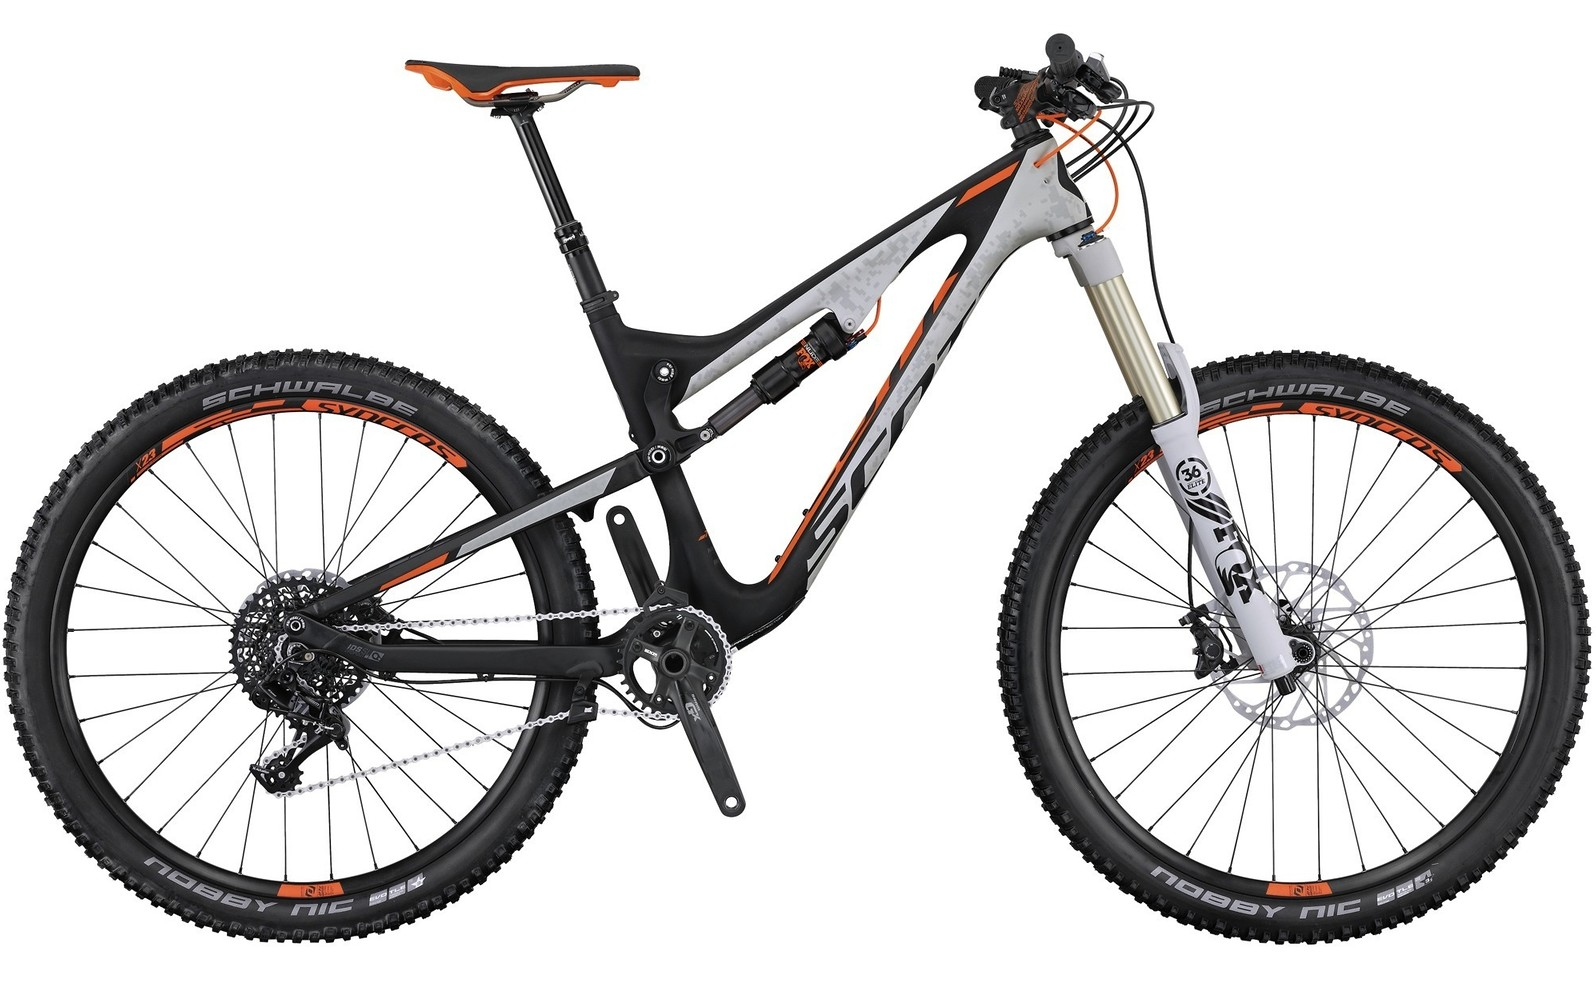 d6cc40f65b8 2016 Scott Genius LT 710 - Reviews, Comparisons, Specs - Mountain ...